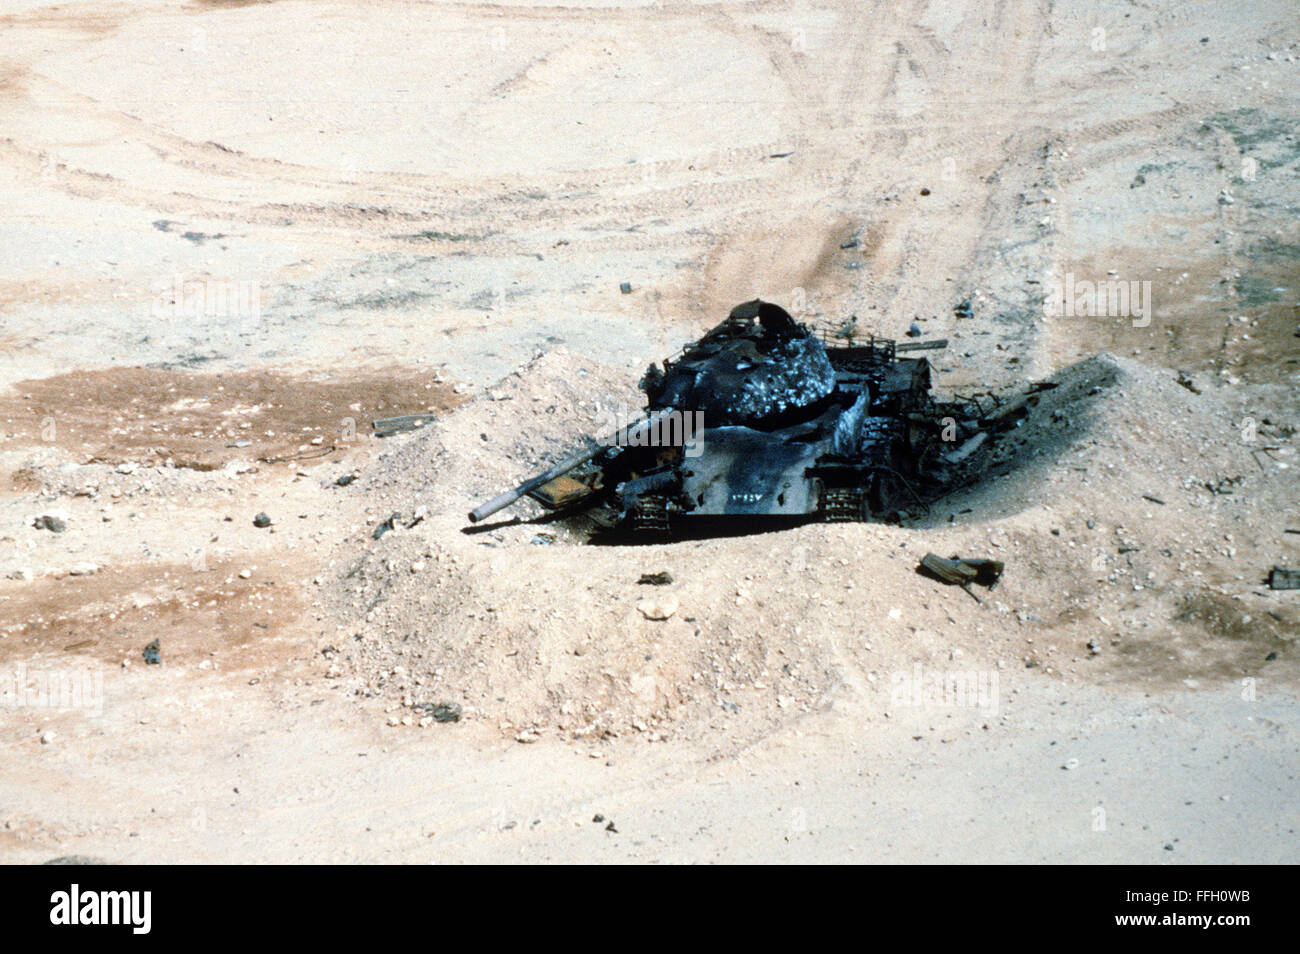 An Iraqi T-55 tank lies in ruins in the aftermath of an Allied bombing attack during Operation Desert Storm. - Stock Image